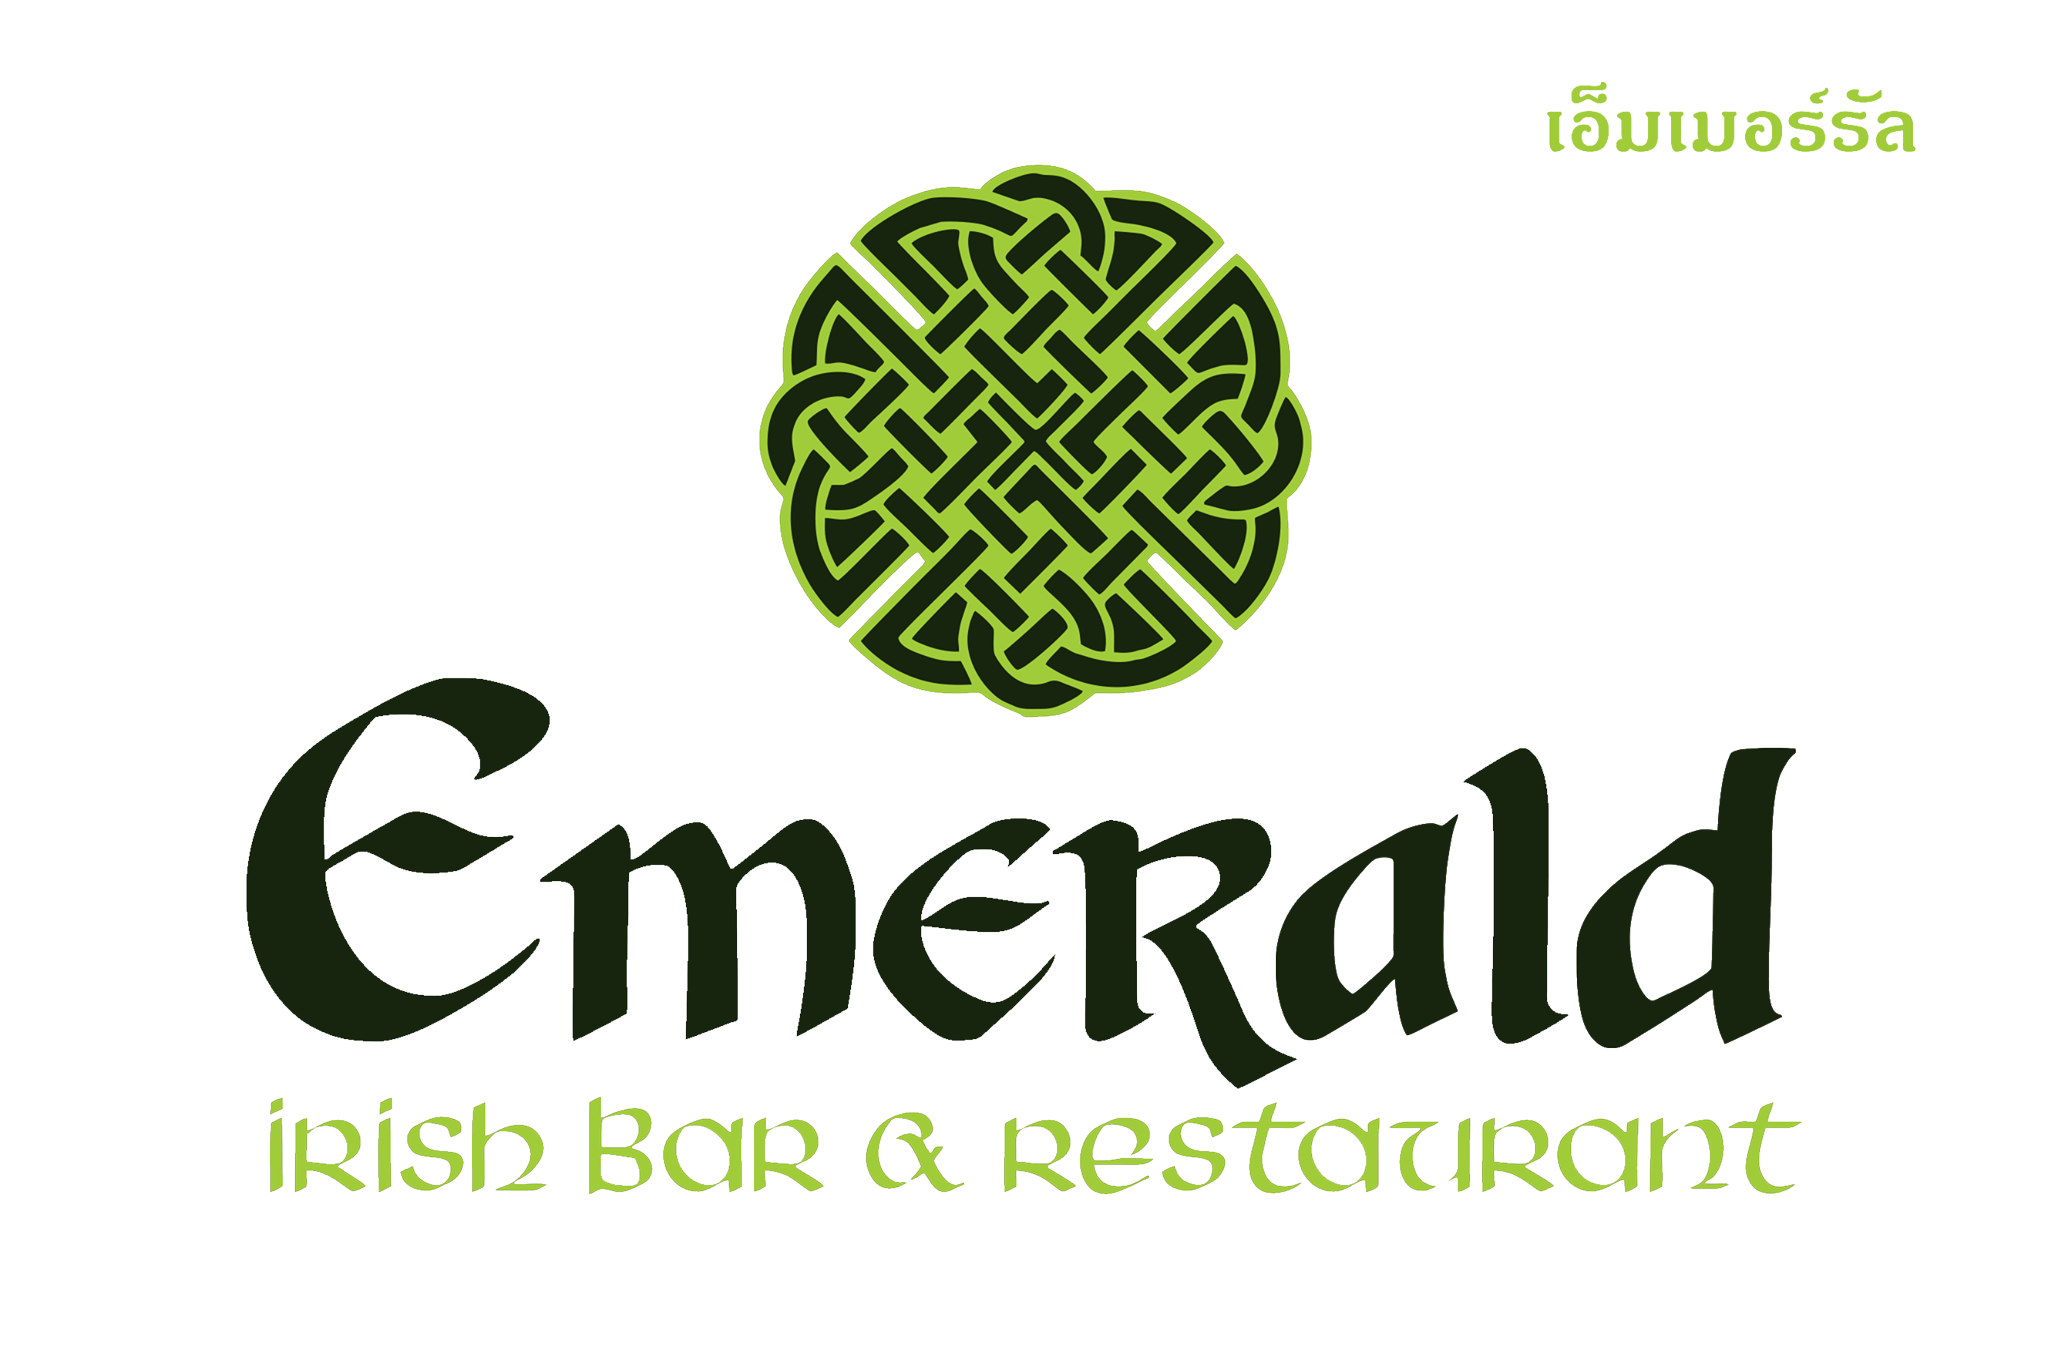 Emerald Irish Bar & Restaurant